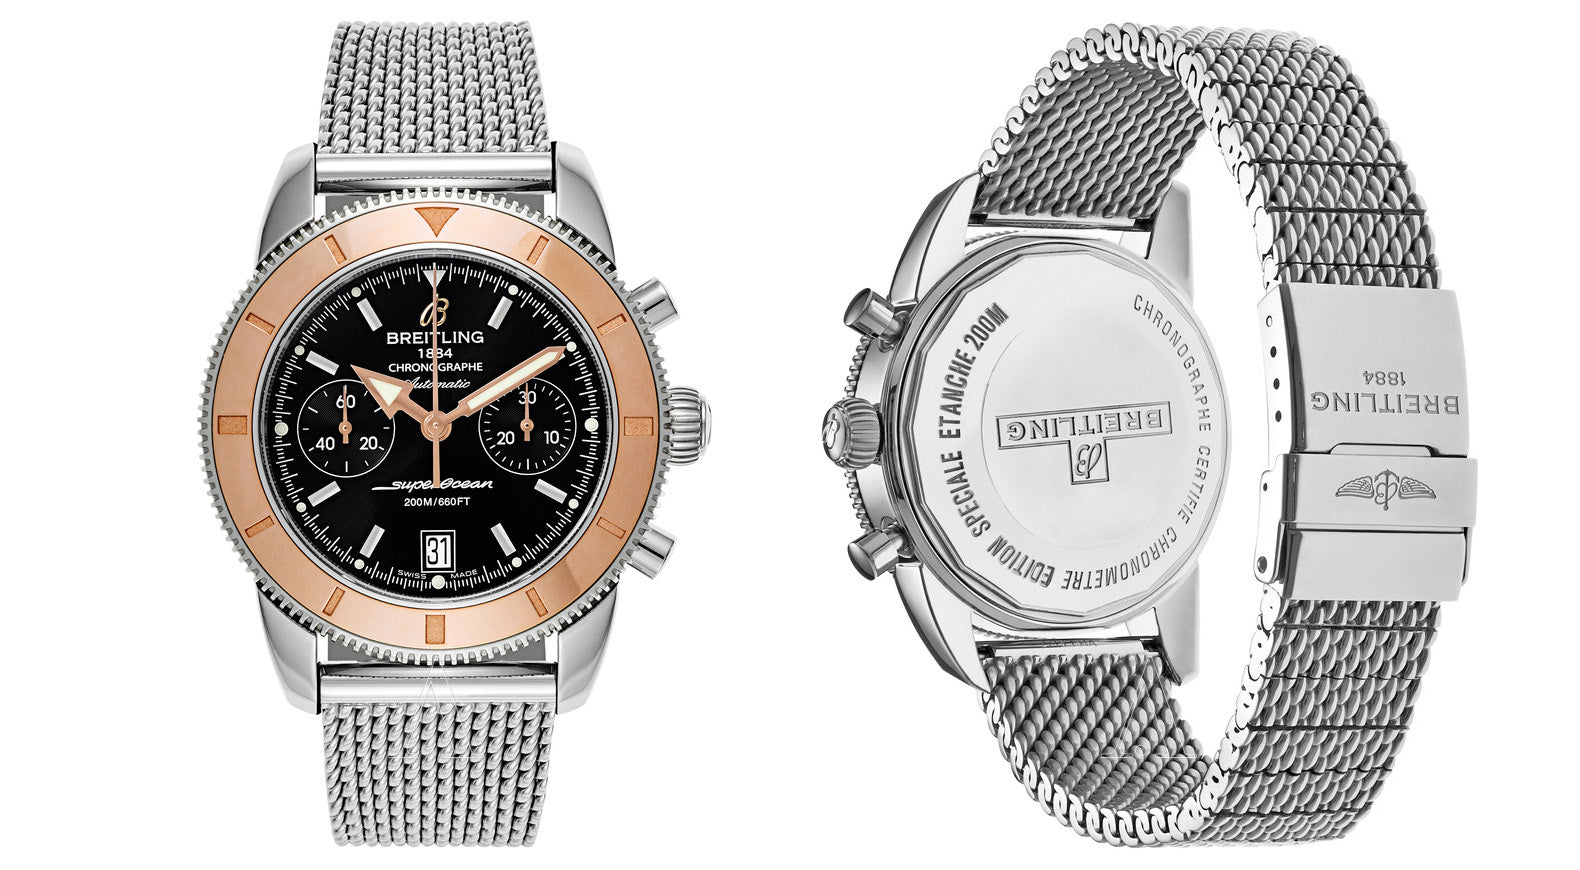 e2df5cb0910 The best proof was the bracelet that came with Breitling s SuperOcean  Heritage series of watches and continues to follow modern editions such as  Breitling ...